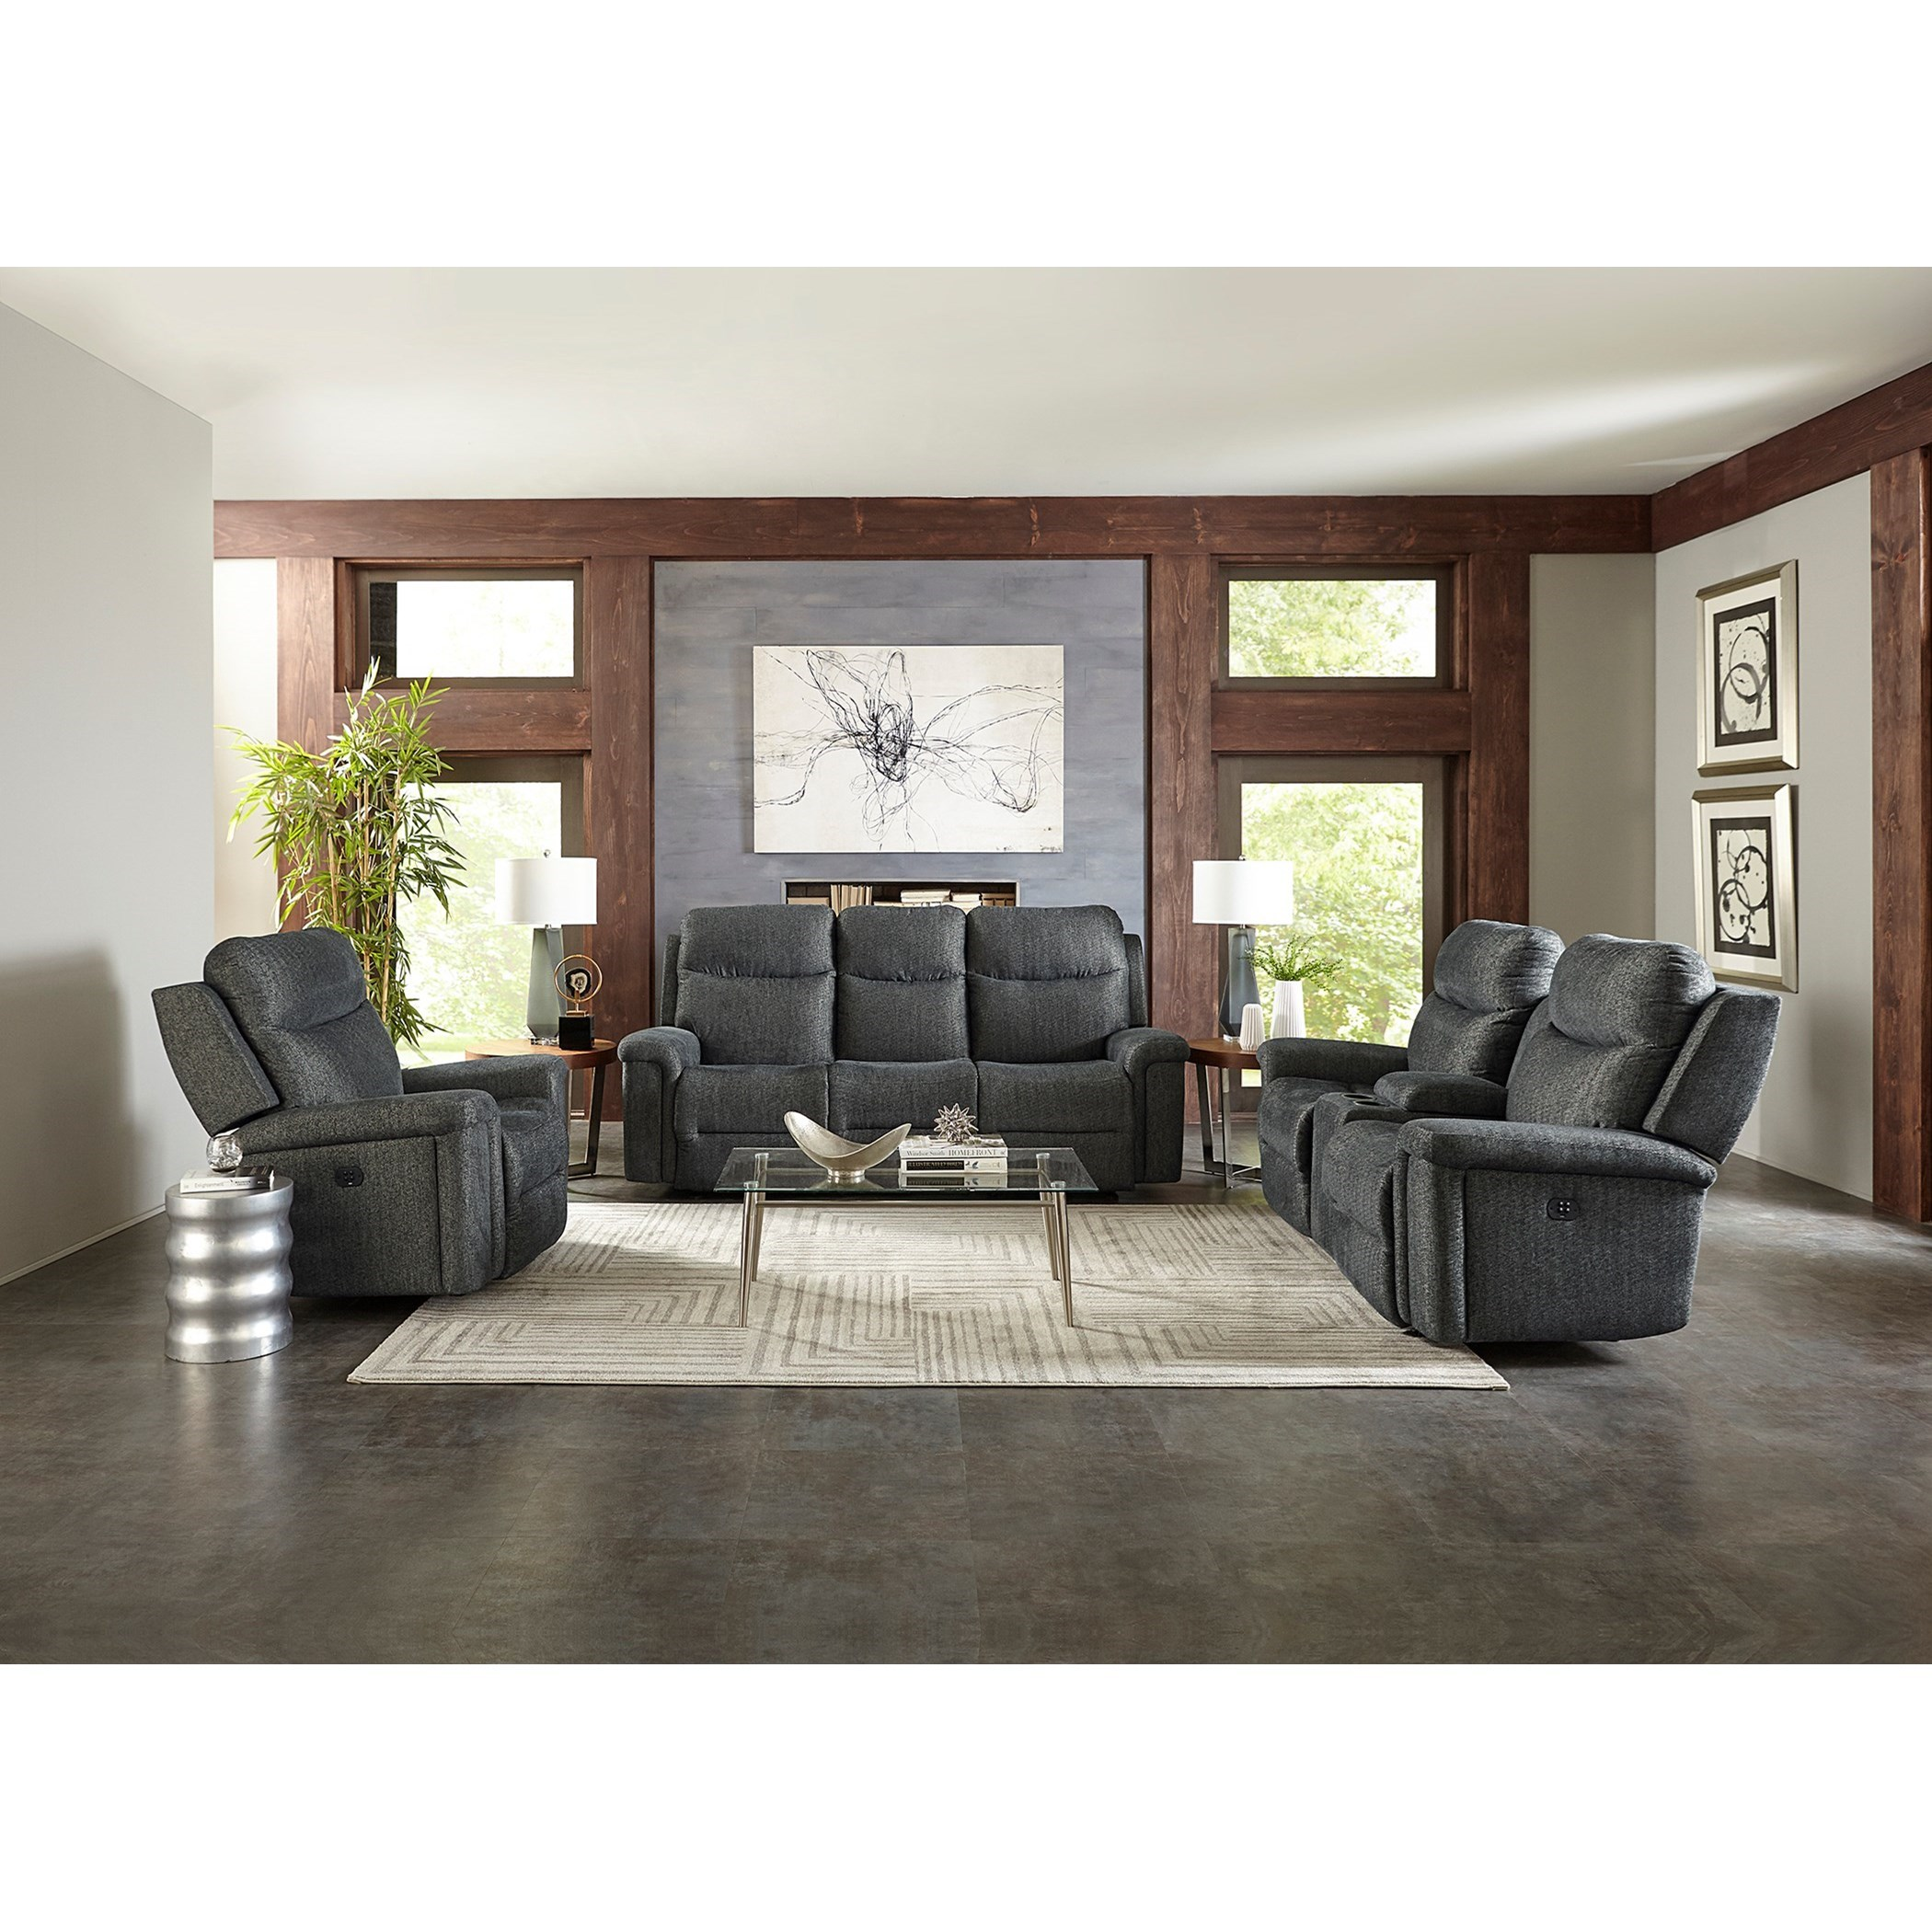 Best Home Furnishings Optima Reclining Living Room Group Value City Furniture Groups